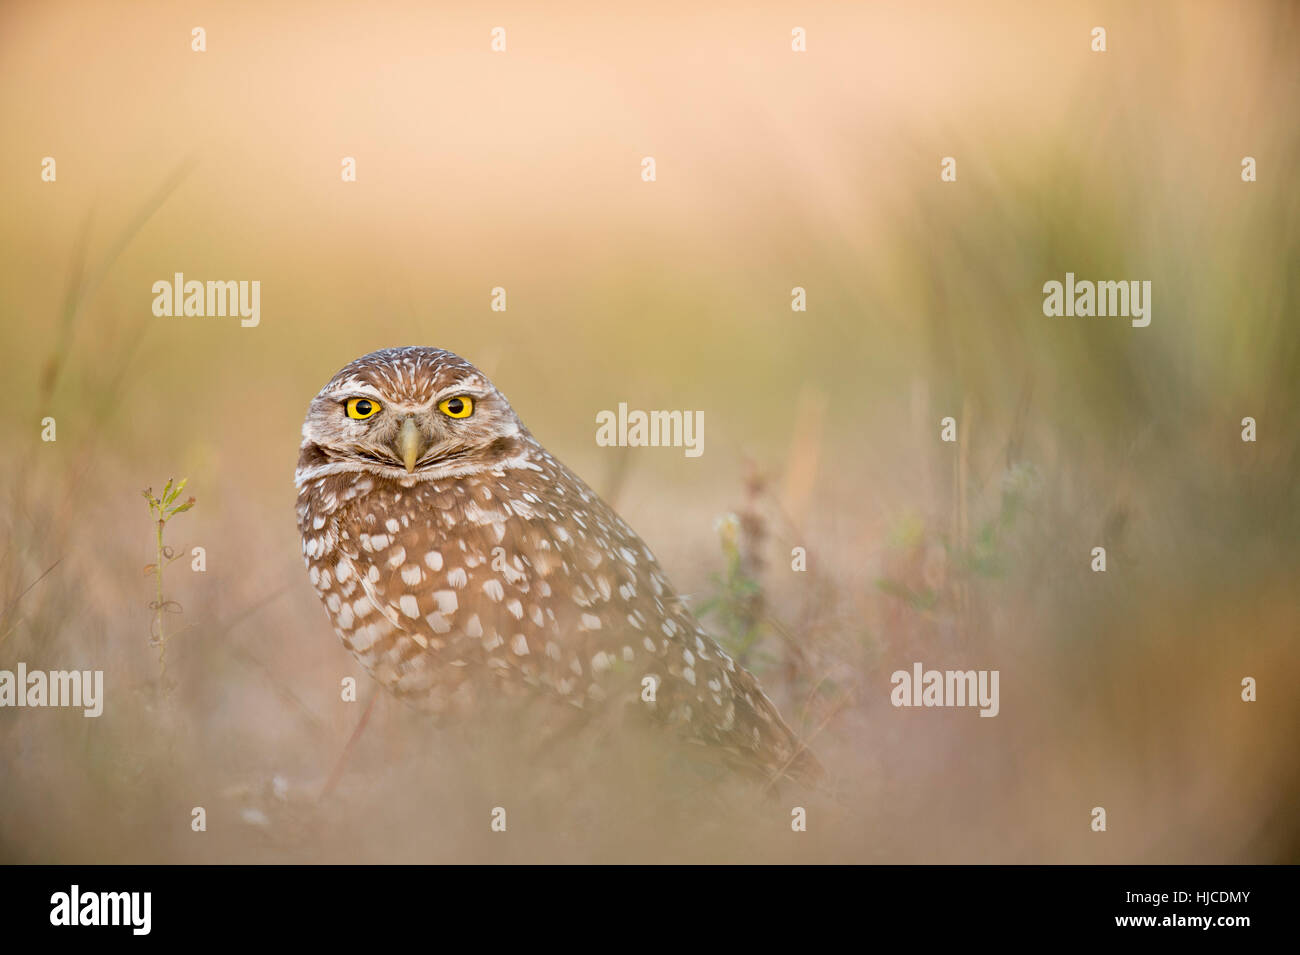 A Florida Burrowing Owl looks on with its bright yellow eyes on a sunny evening. - Stock Image